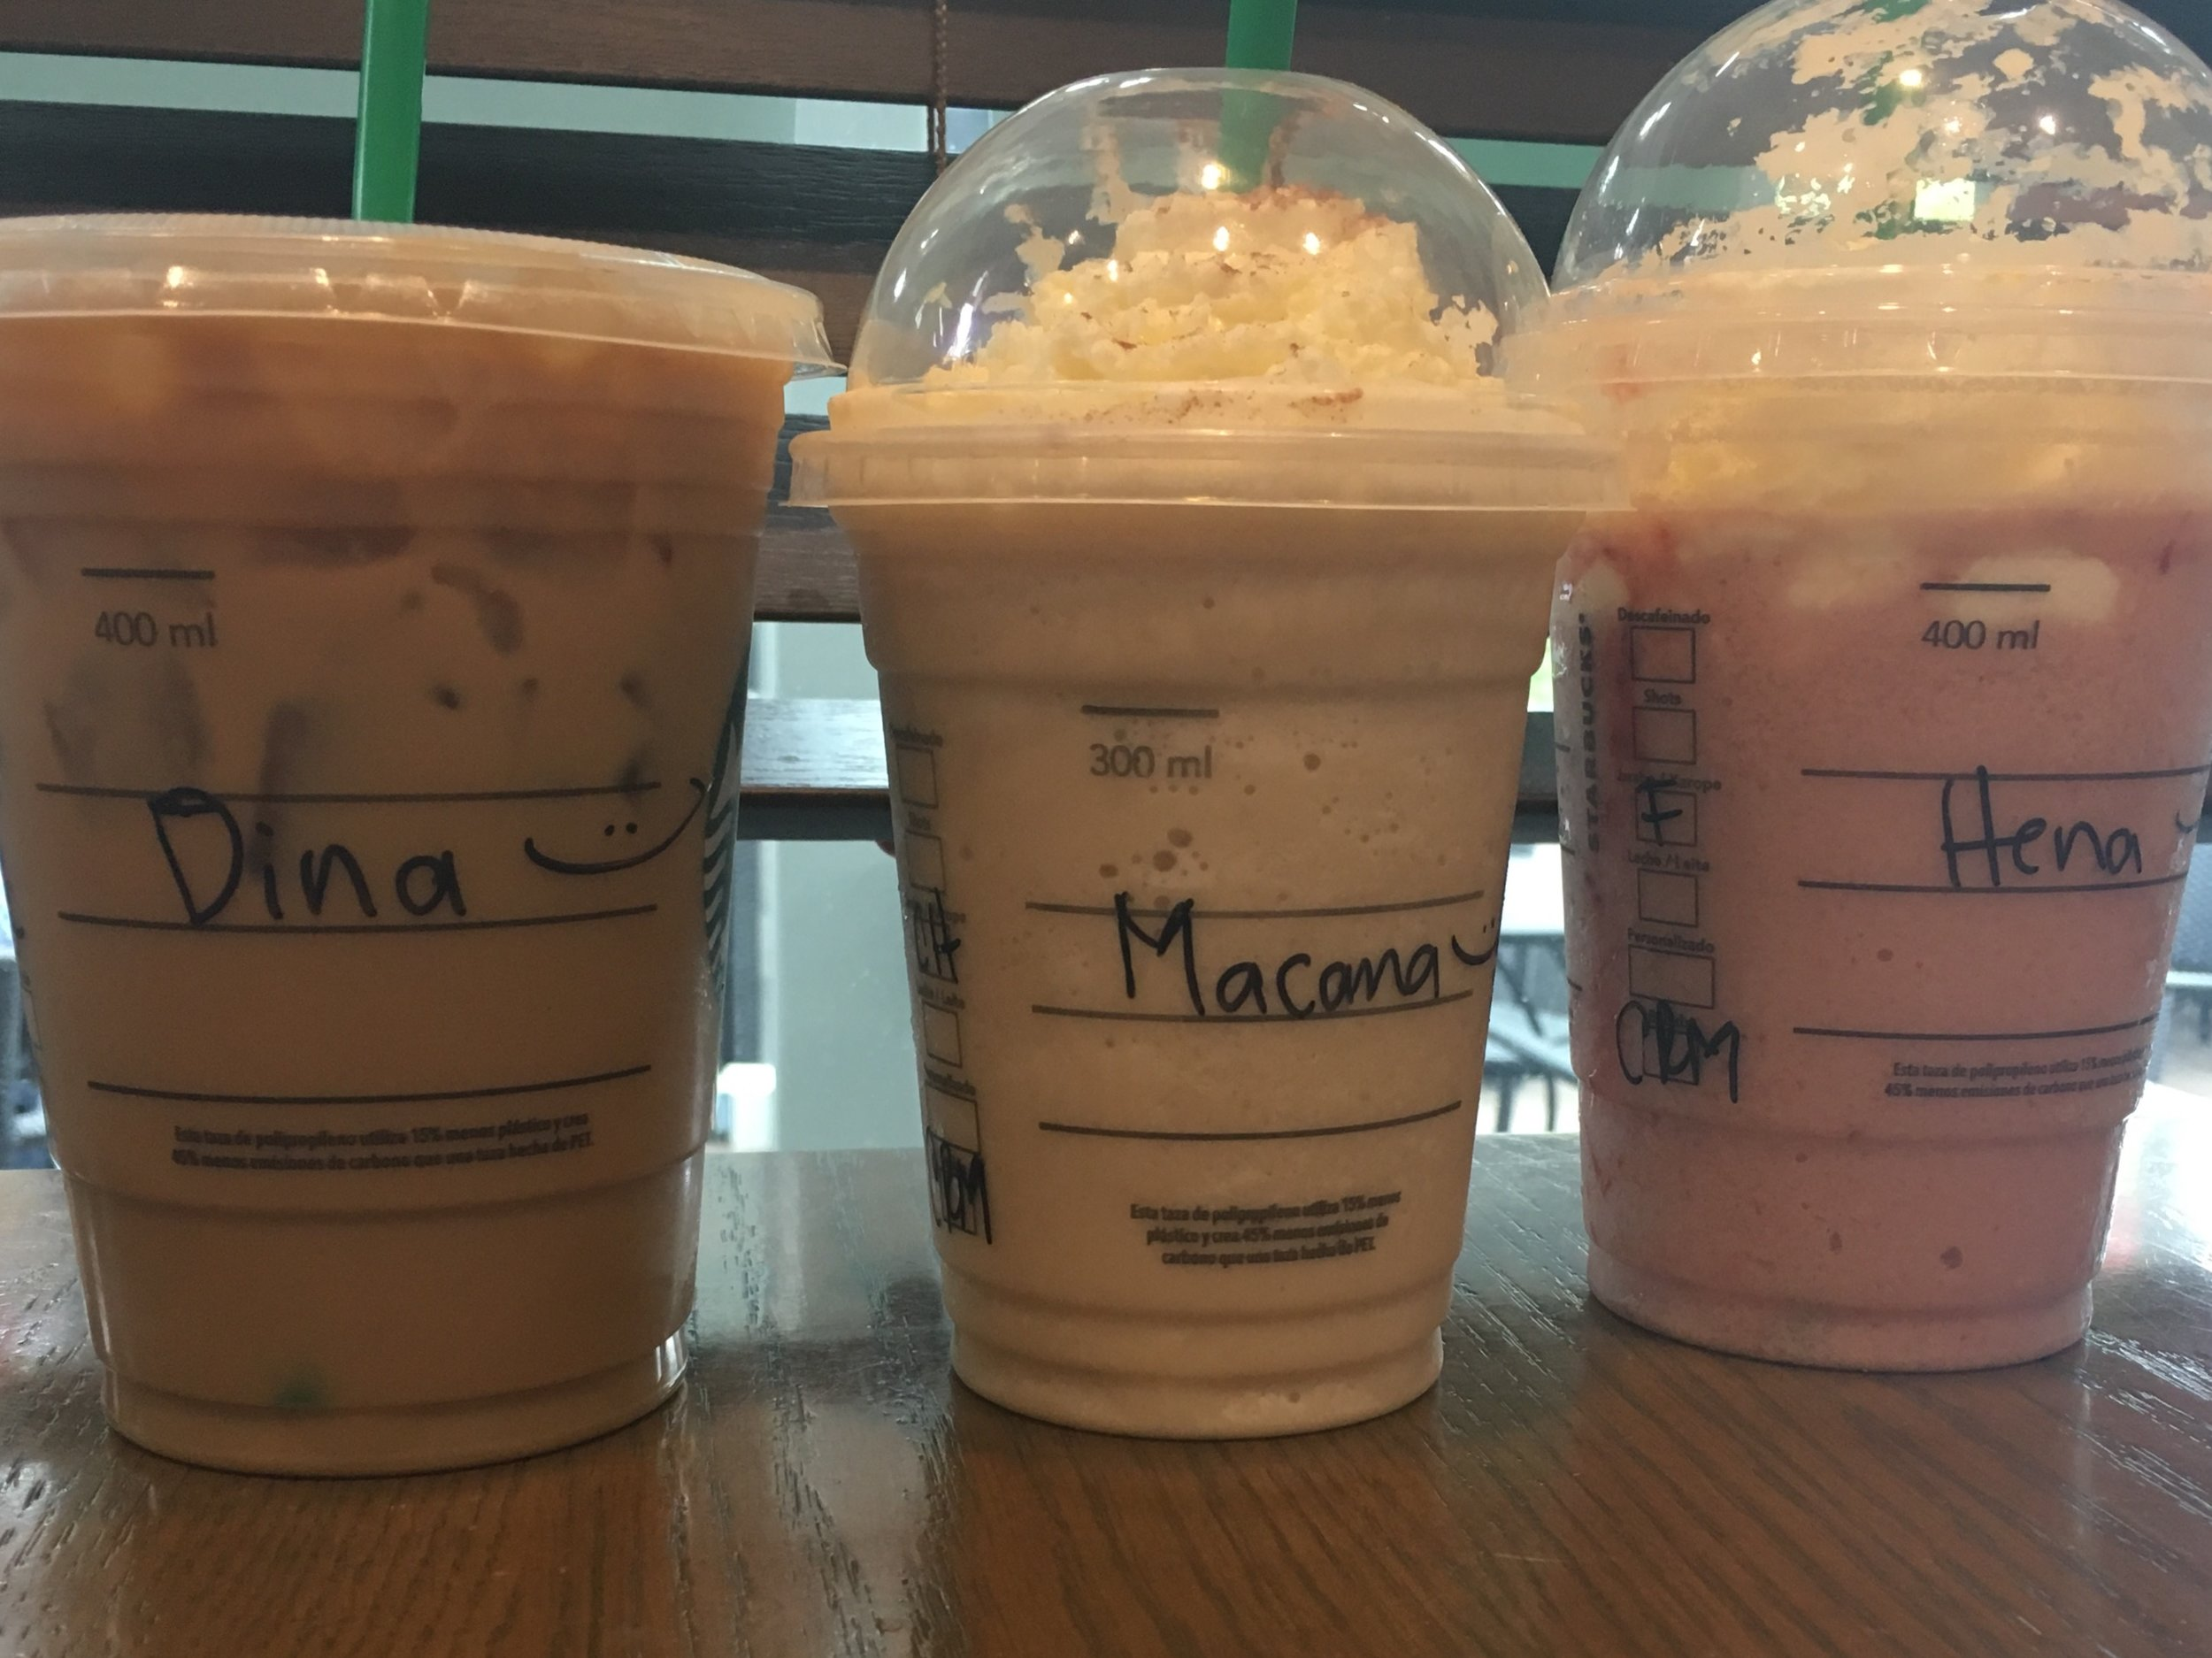 We got a good laugh out of the way Starbuck's spelled Tina, McKenna, and Hannah!